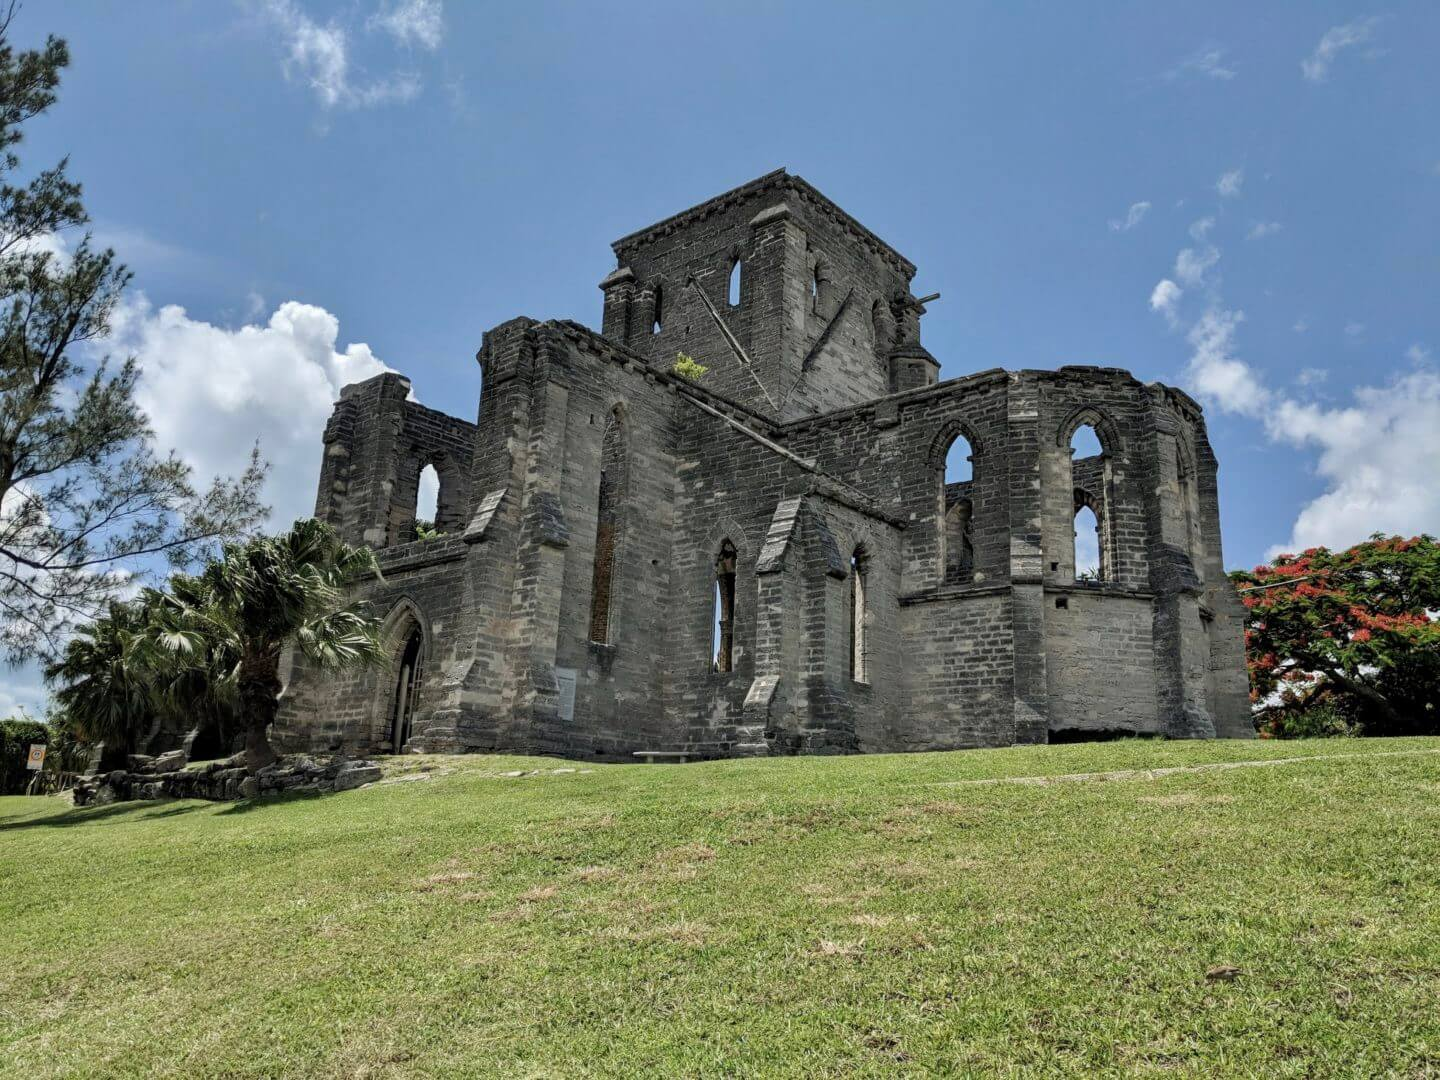 facade of the unfinished church